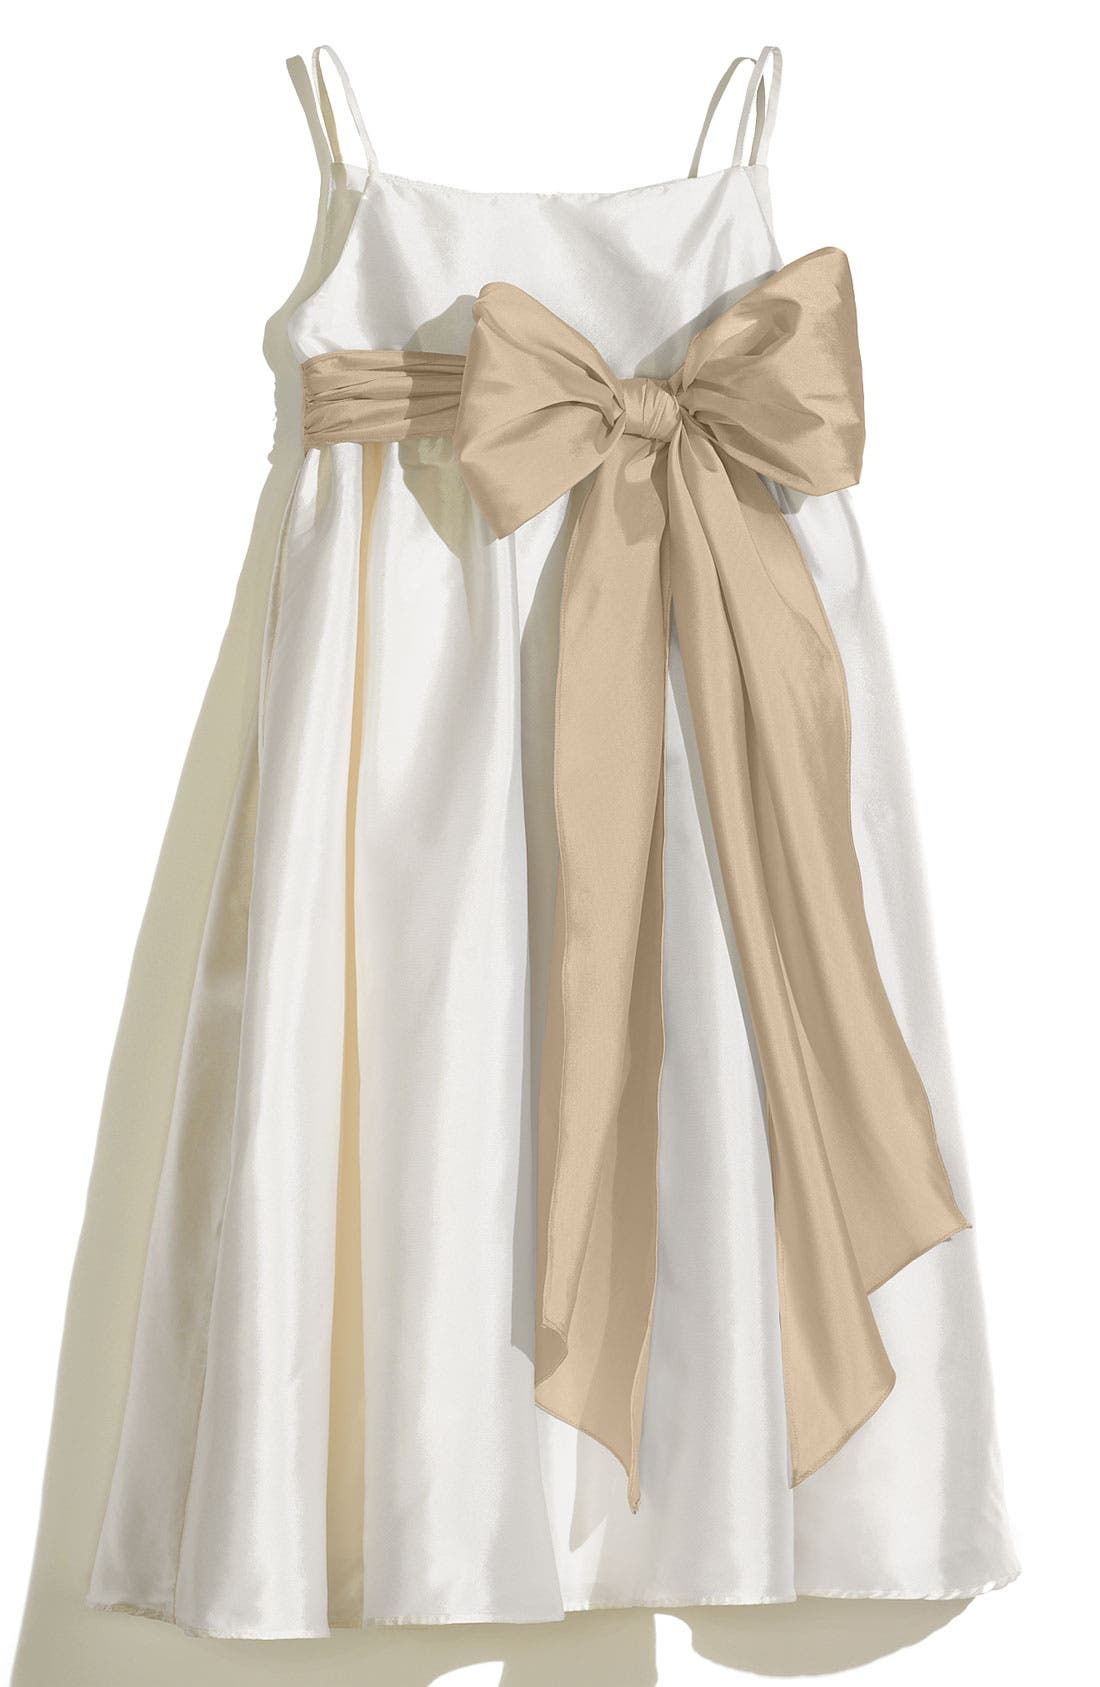 Alternate Image 1 Selected - Us Angels A-Line Dress with Sash (Toddler Girls, Little Girls & Big Girls)